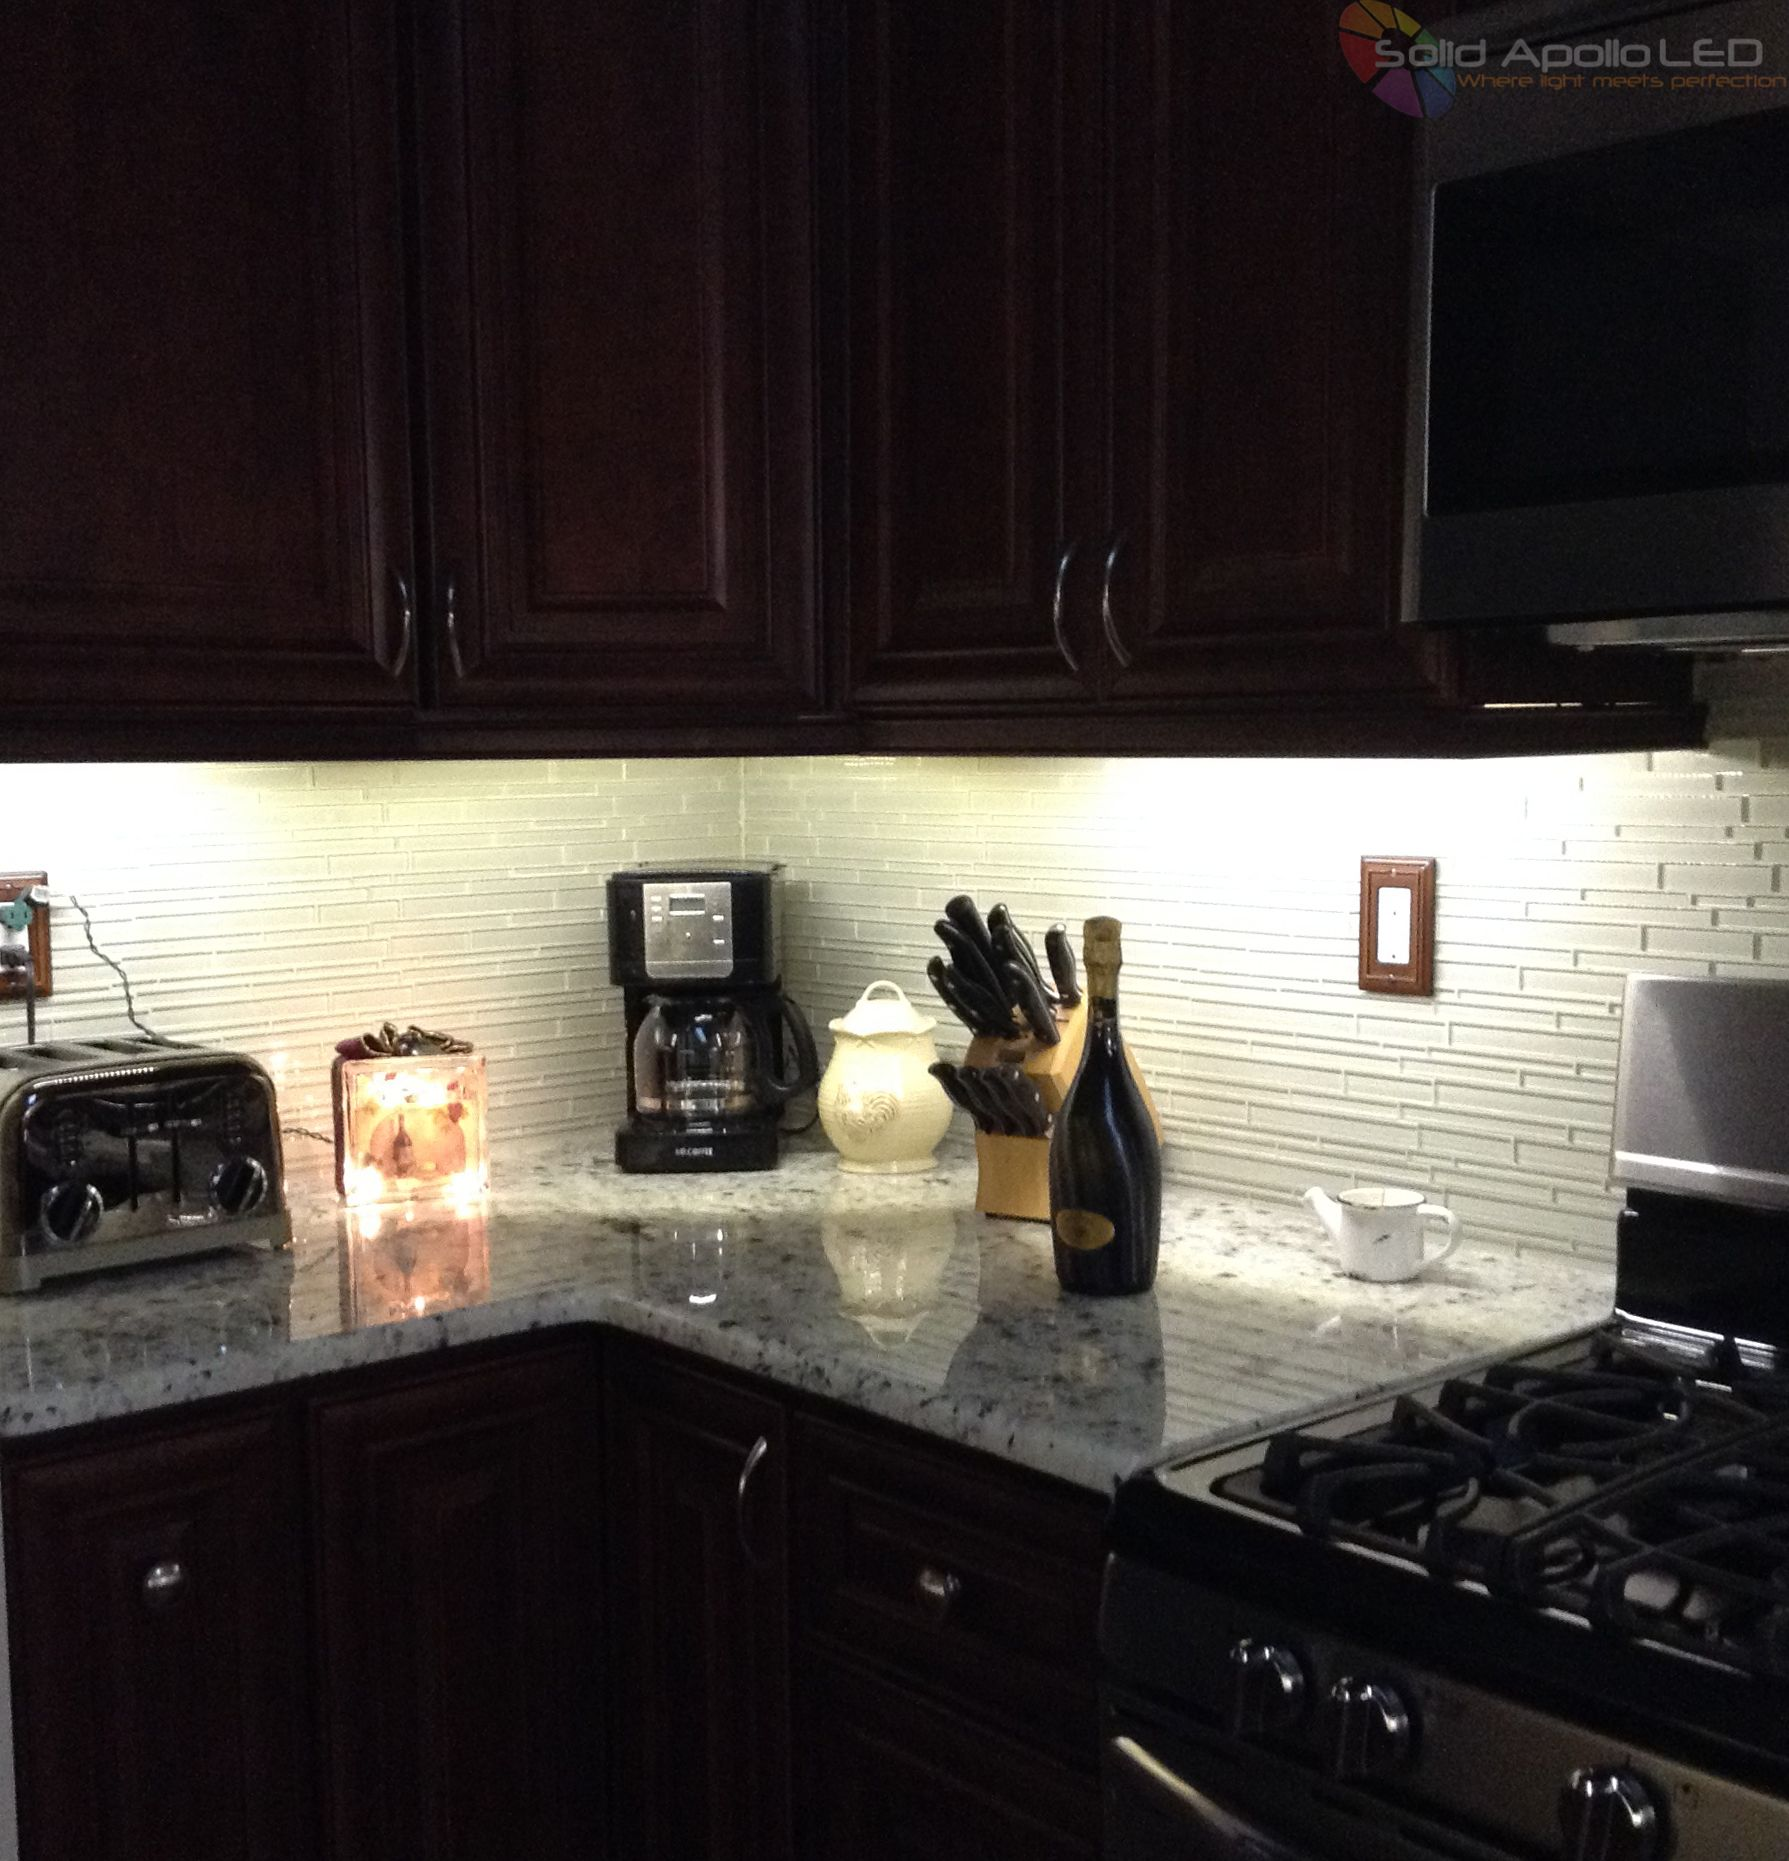 Kitchen Under Cabinet LED Lighting Projects Solid Apollo LED http